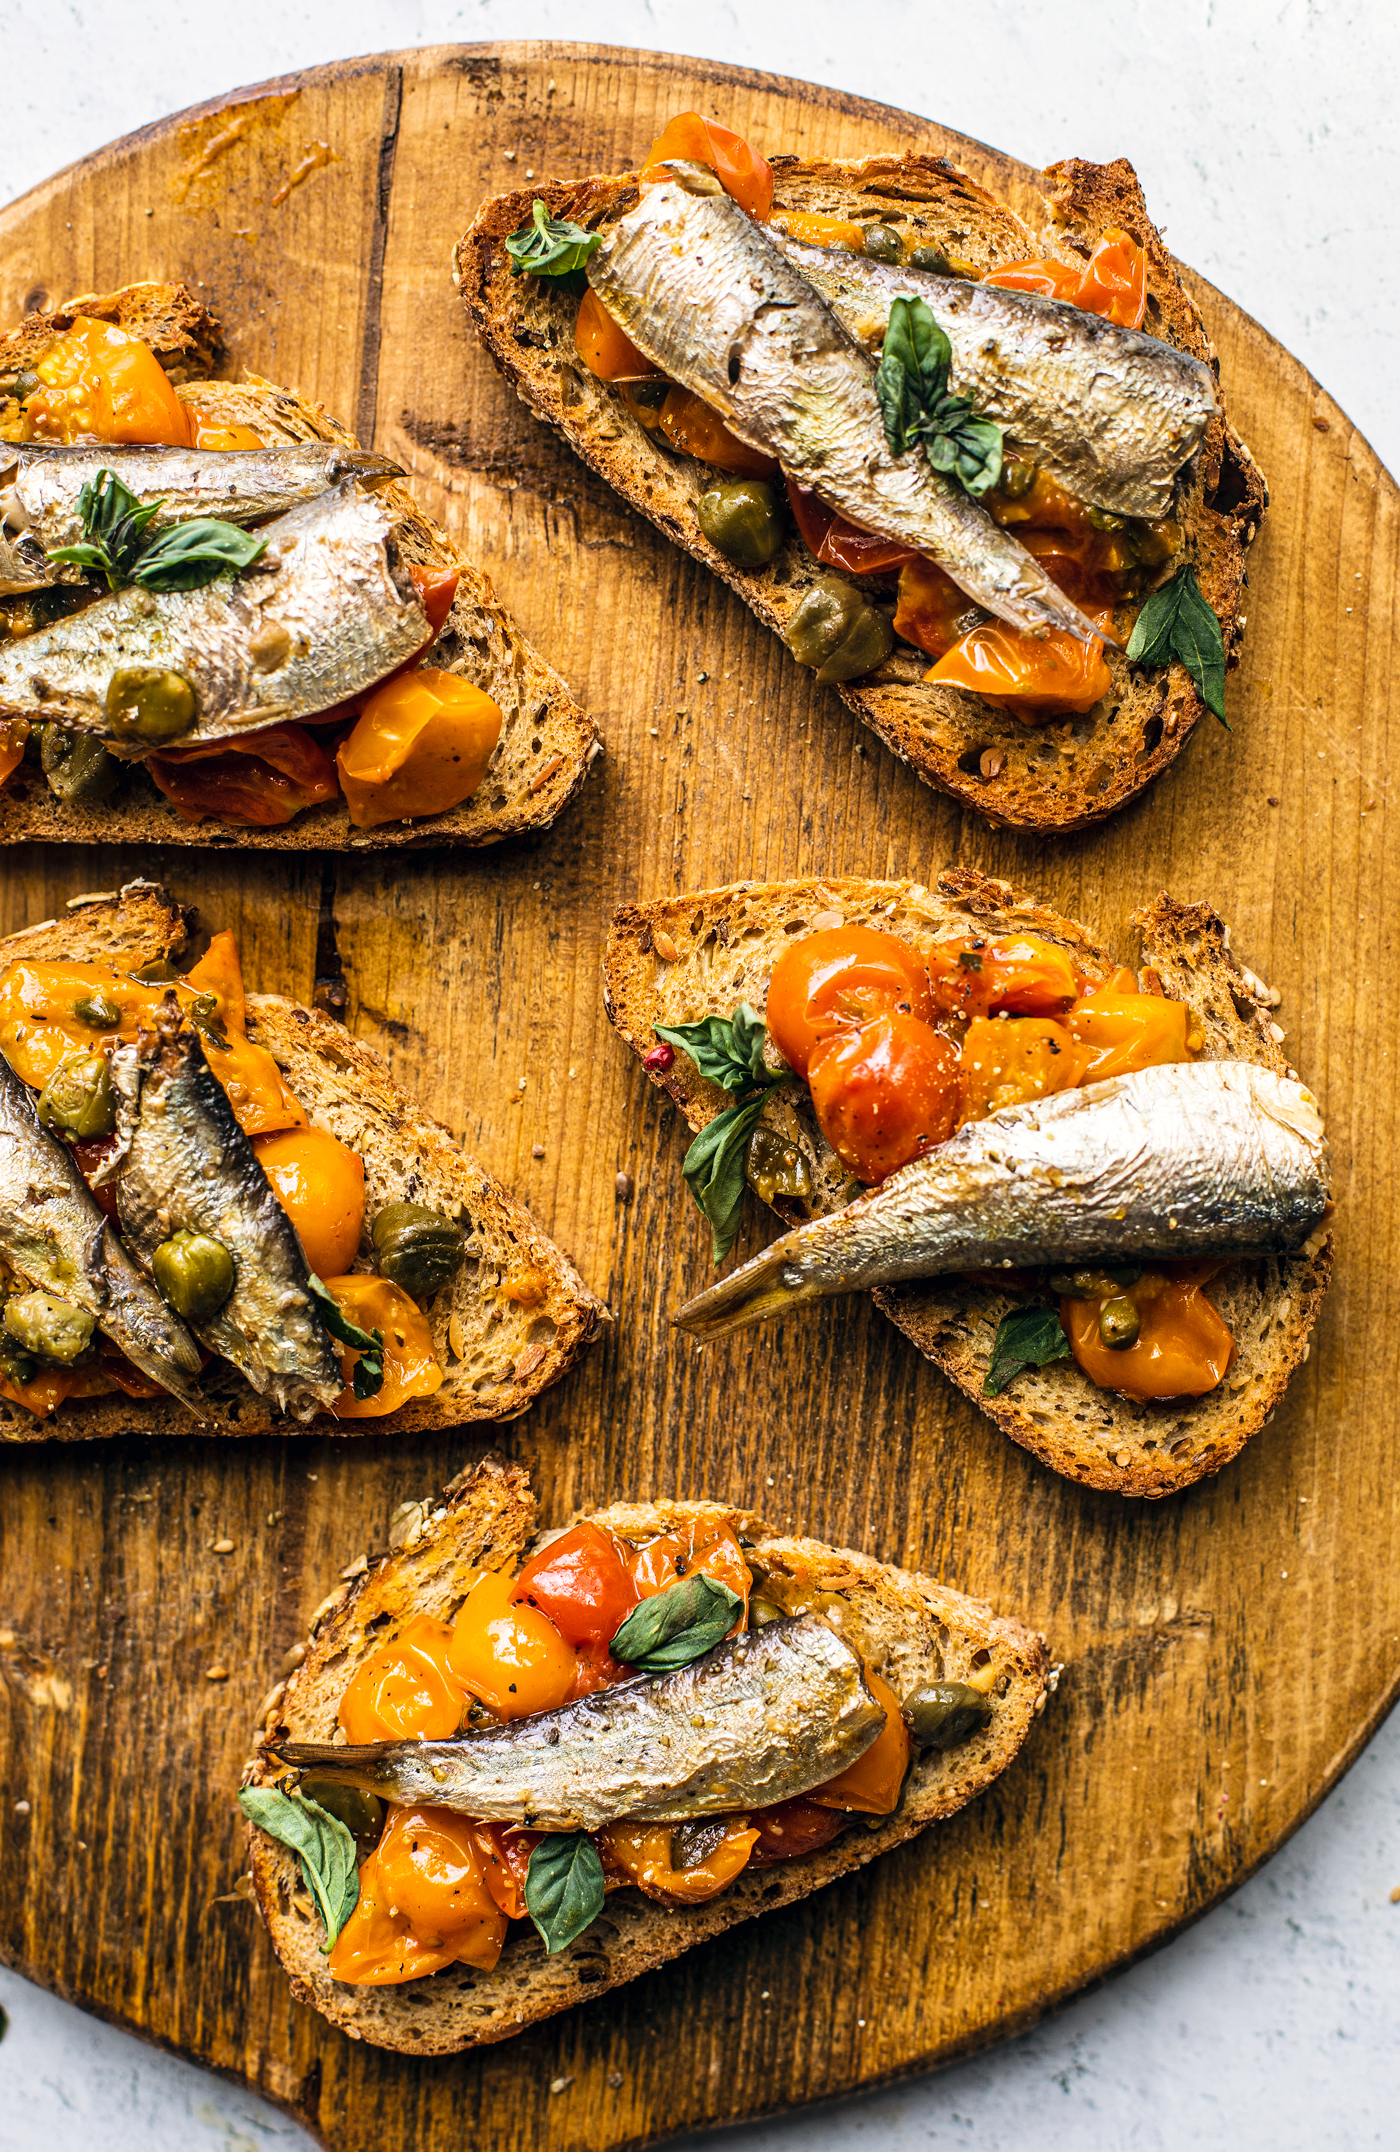 Wooden serving board with toasts topped with tomato confit and sardines.